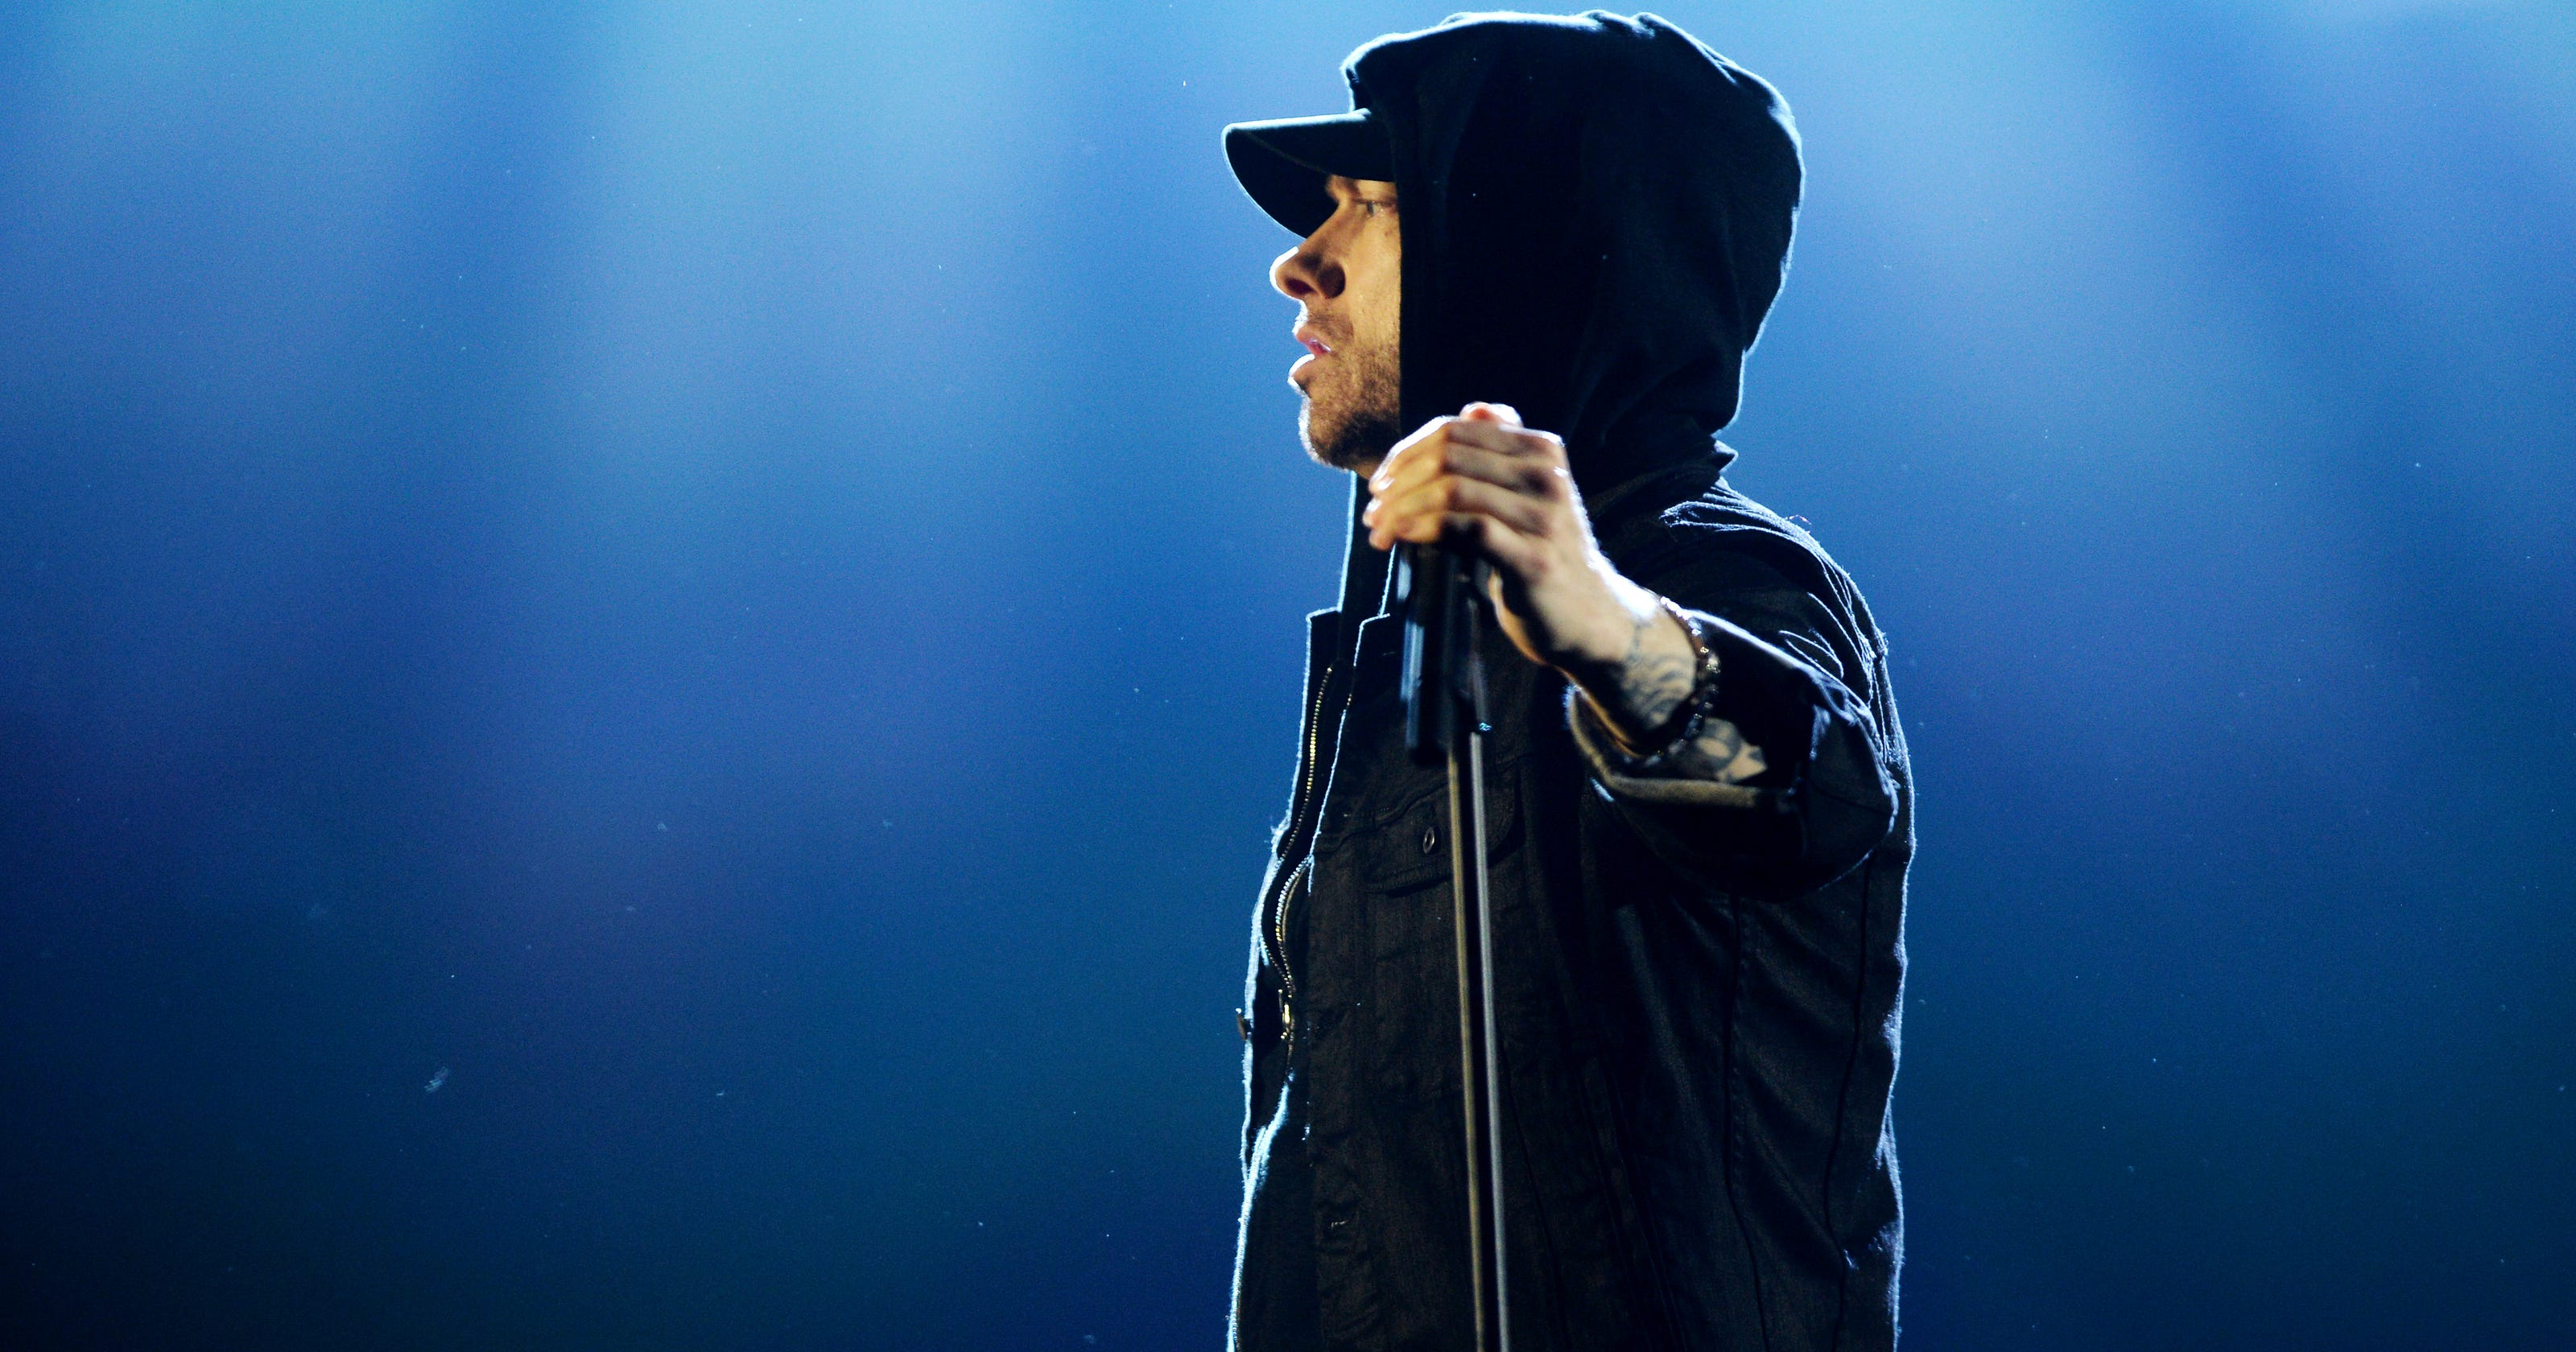 Eminem's sexism: Whether literal or tongue-in-cheek, it may